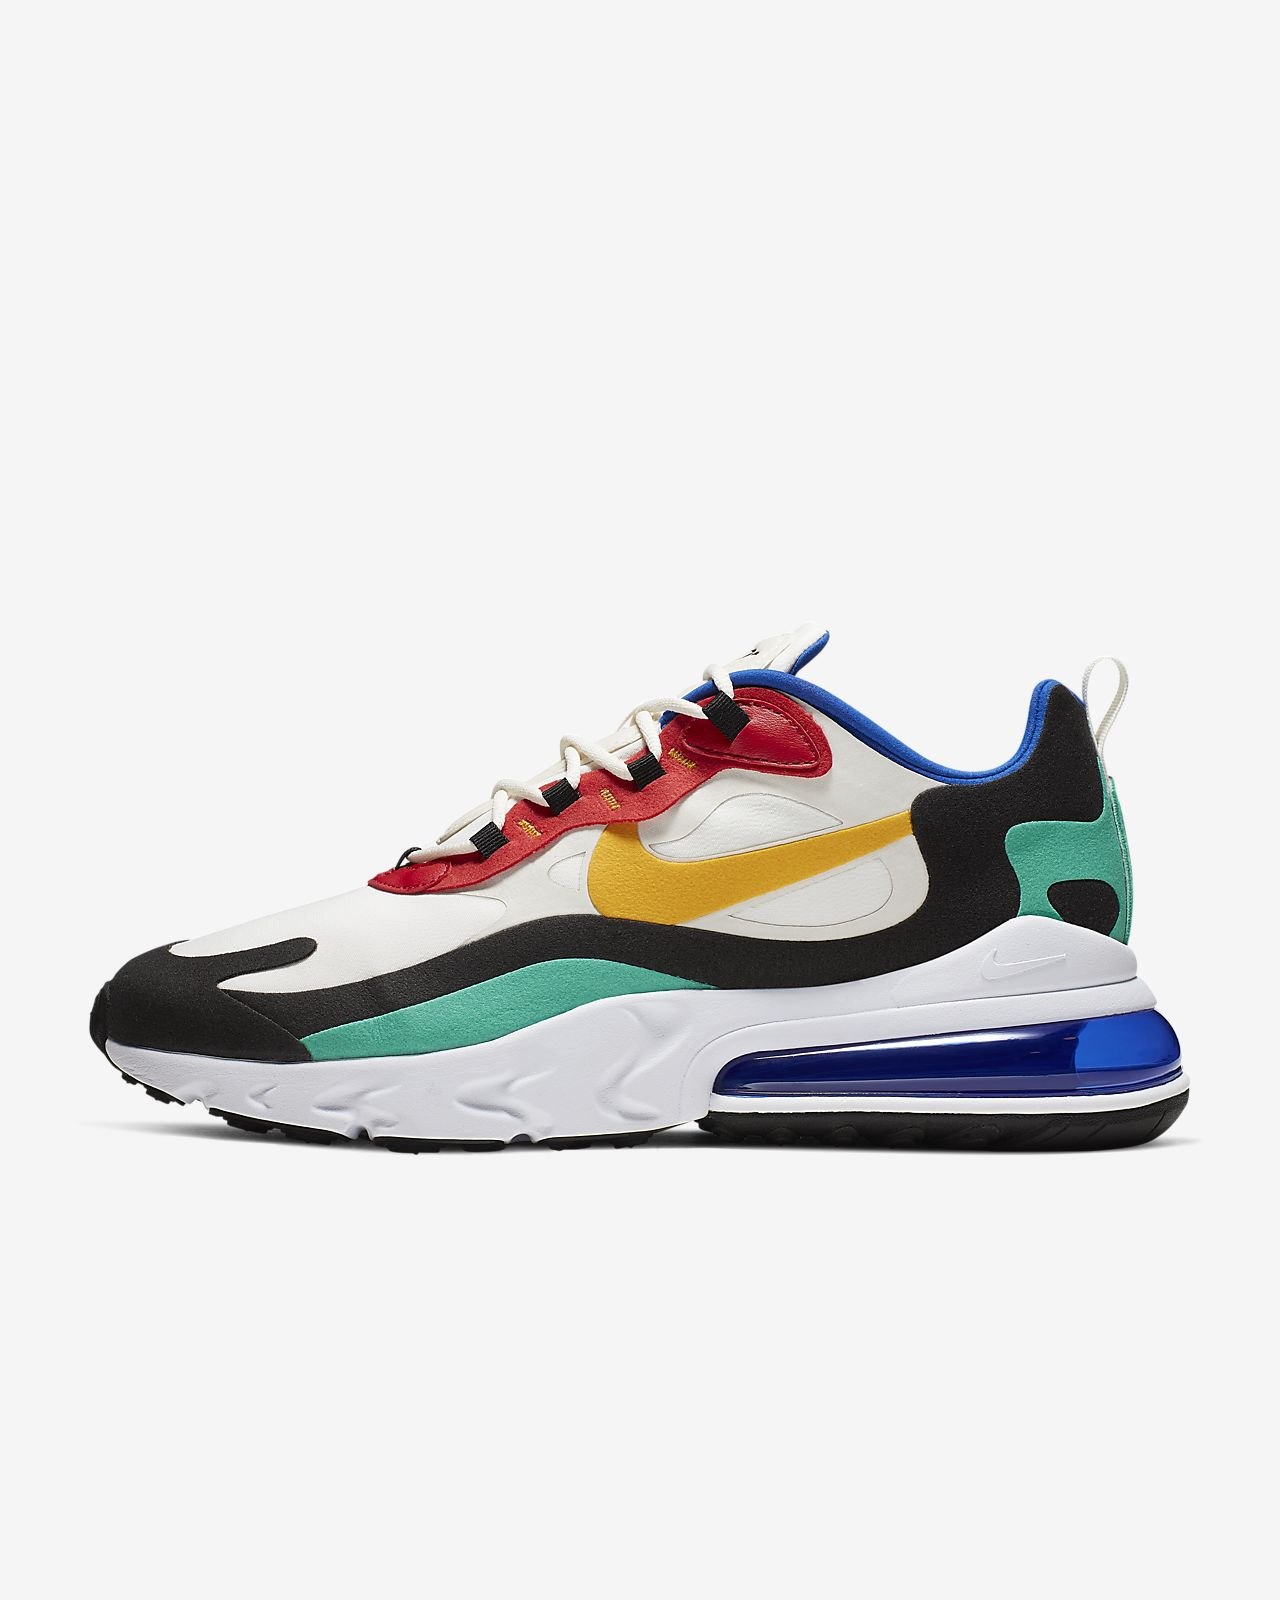 Nike Air Max 270 React Bauhaus Men's Shoes